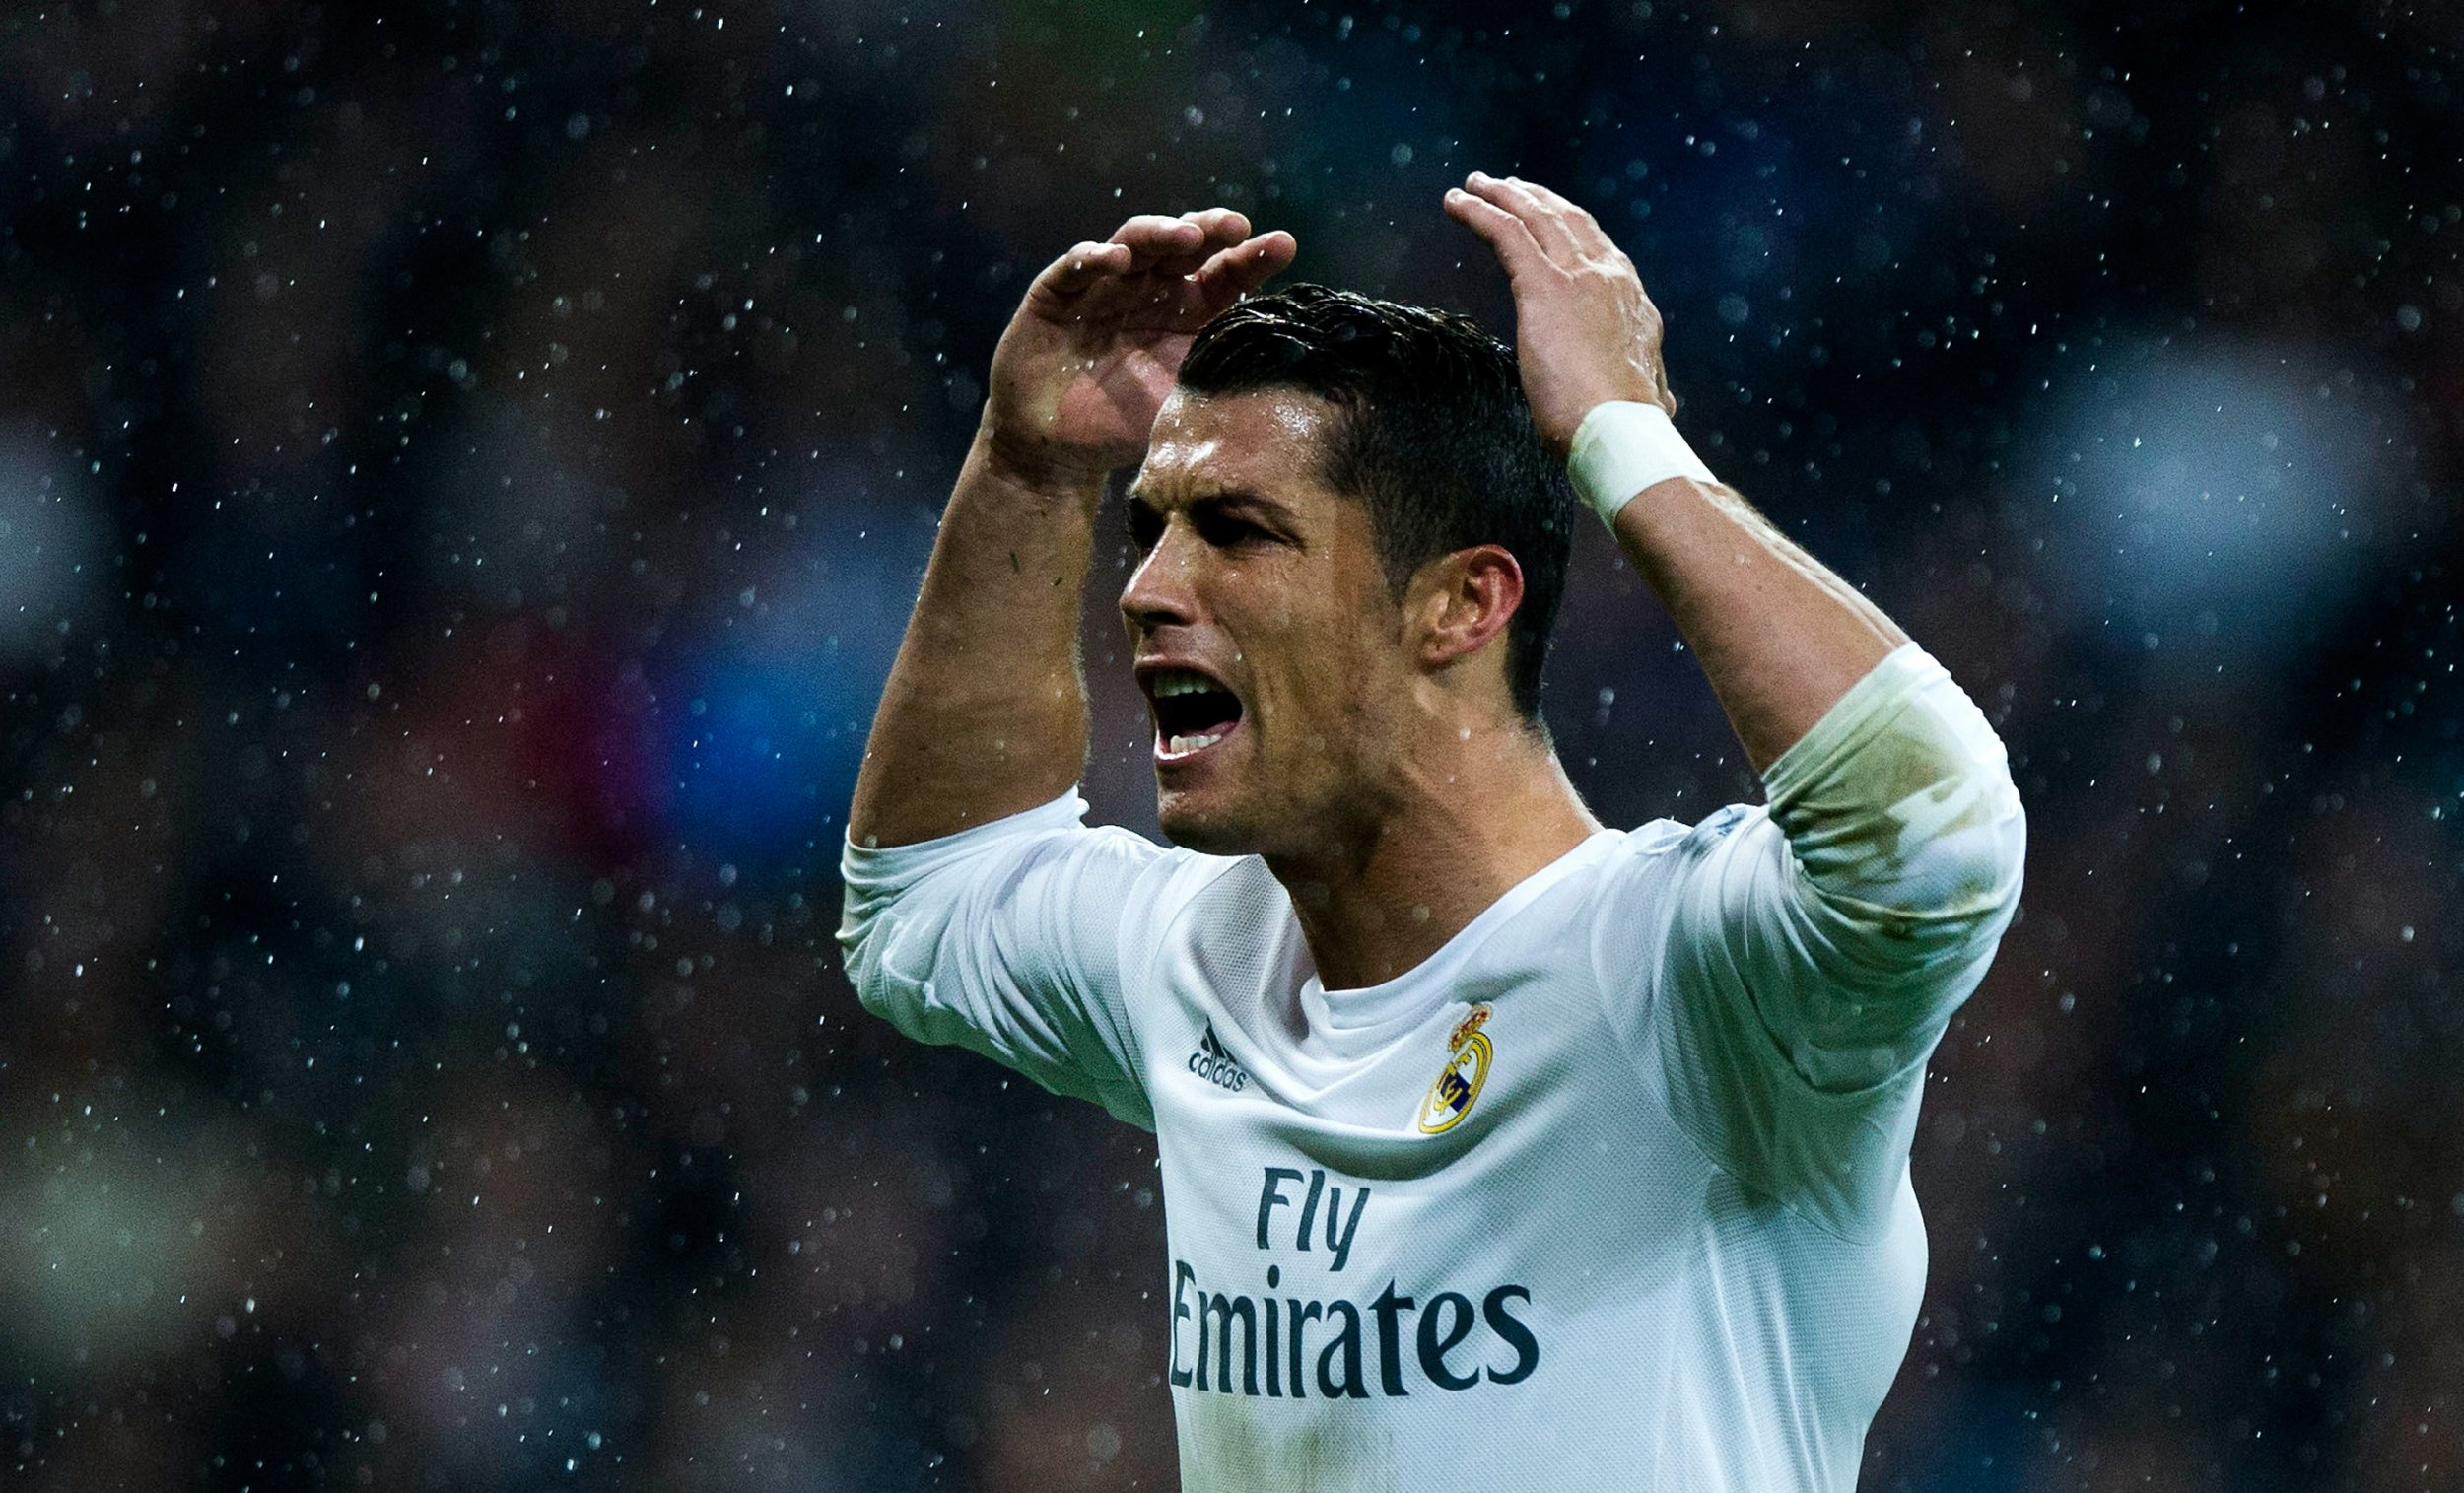 Cristiano Ronaldo scored a hat-trick for Real Madrid against Wolfsburg on Tuesday evening.